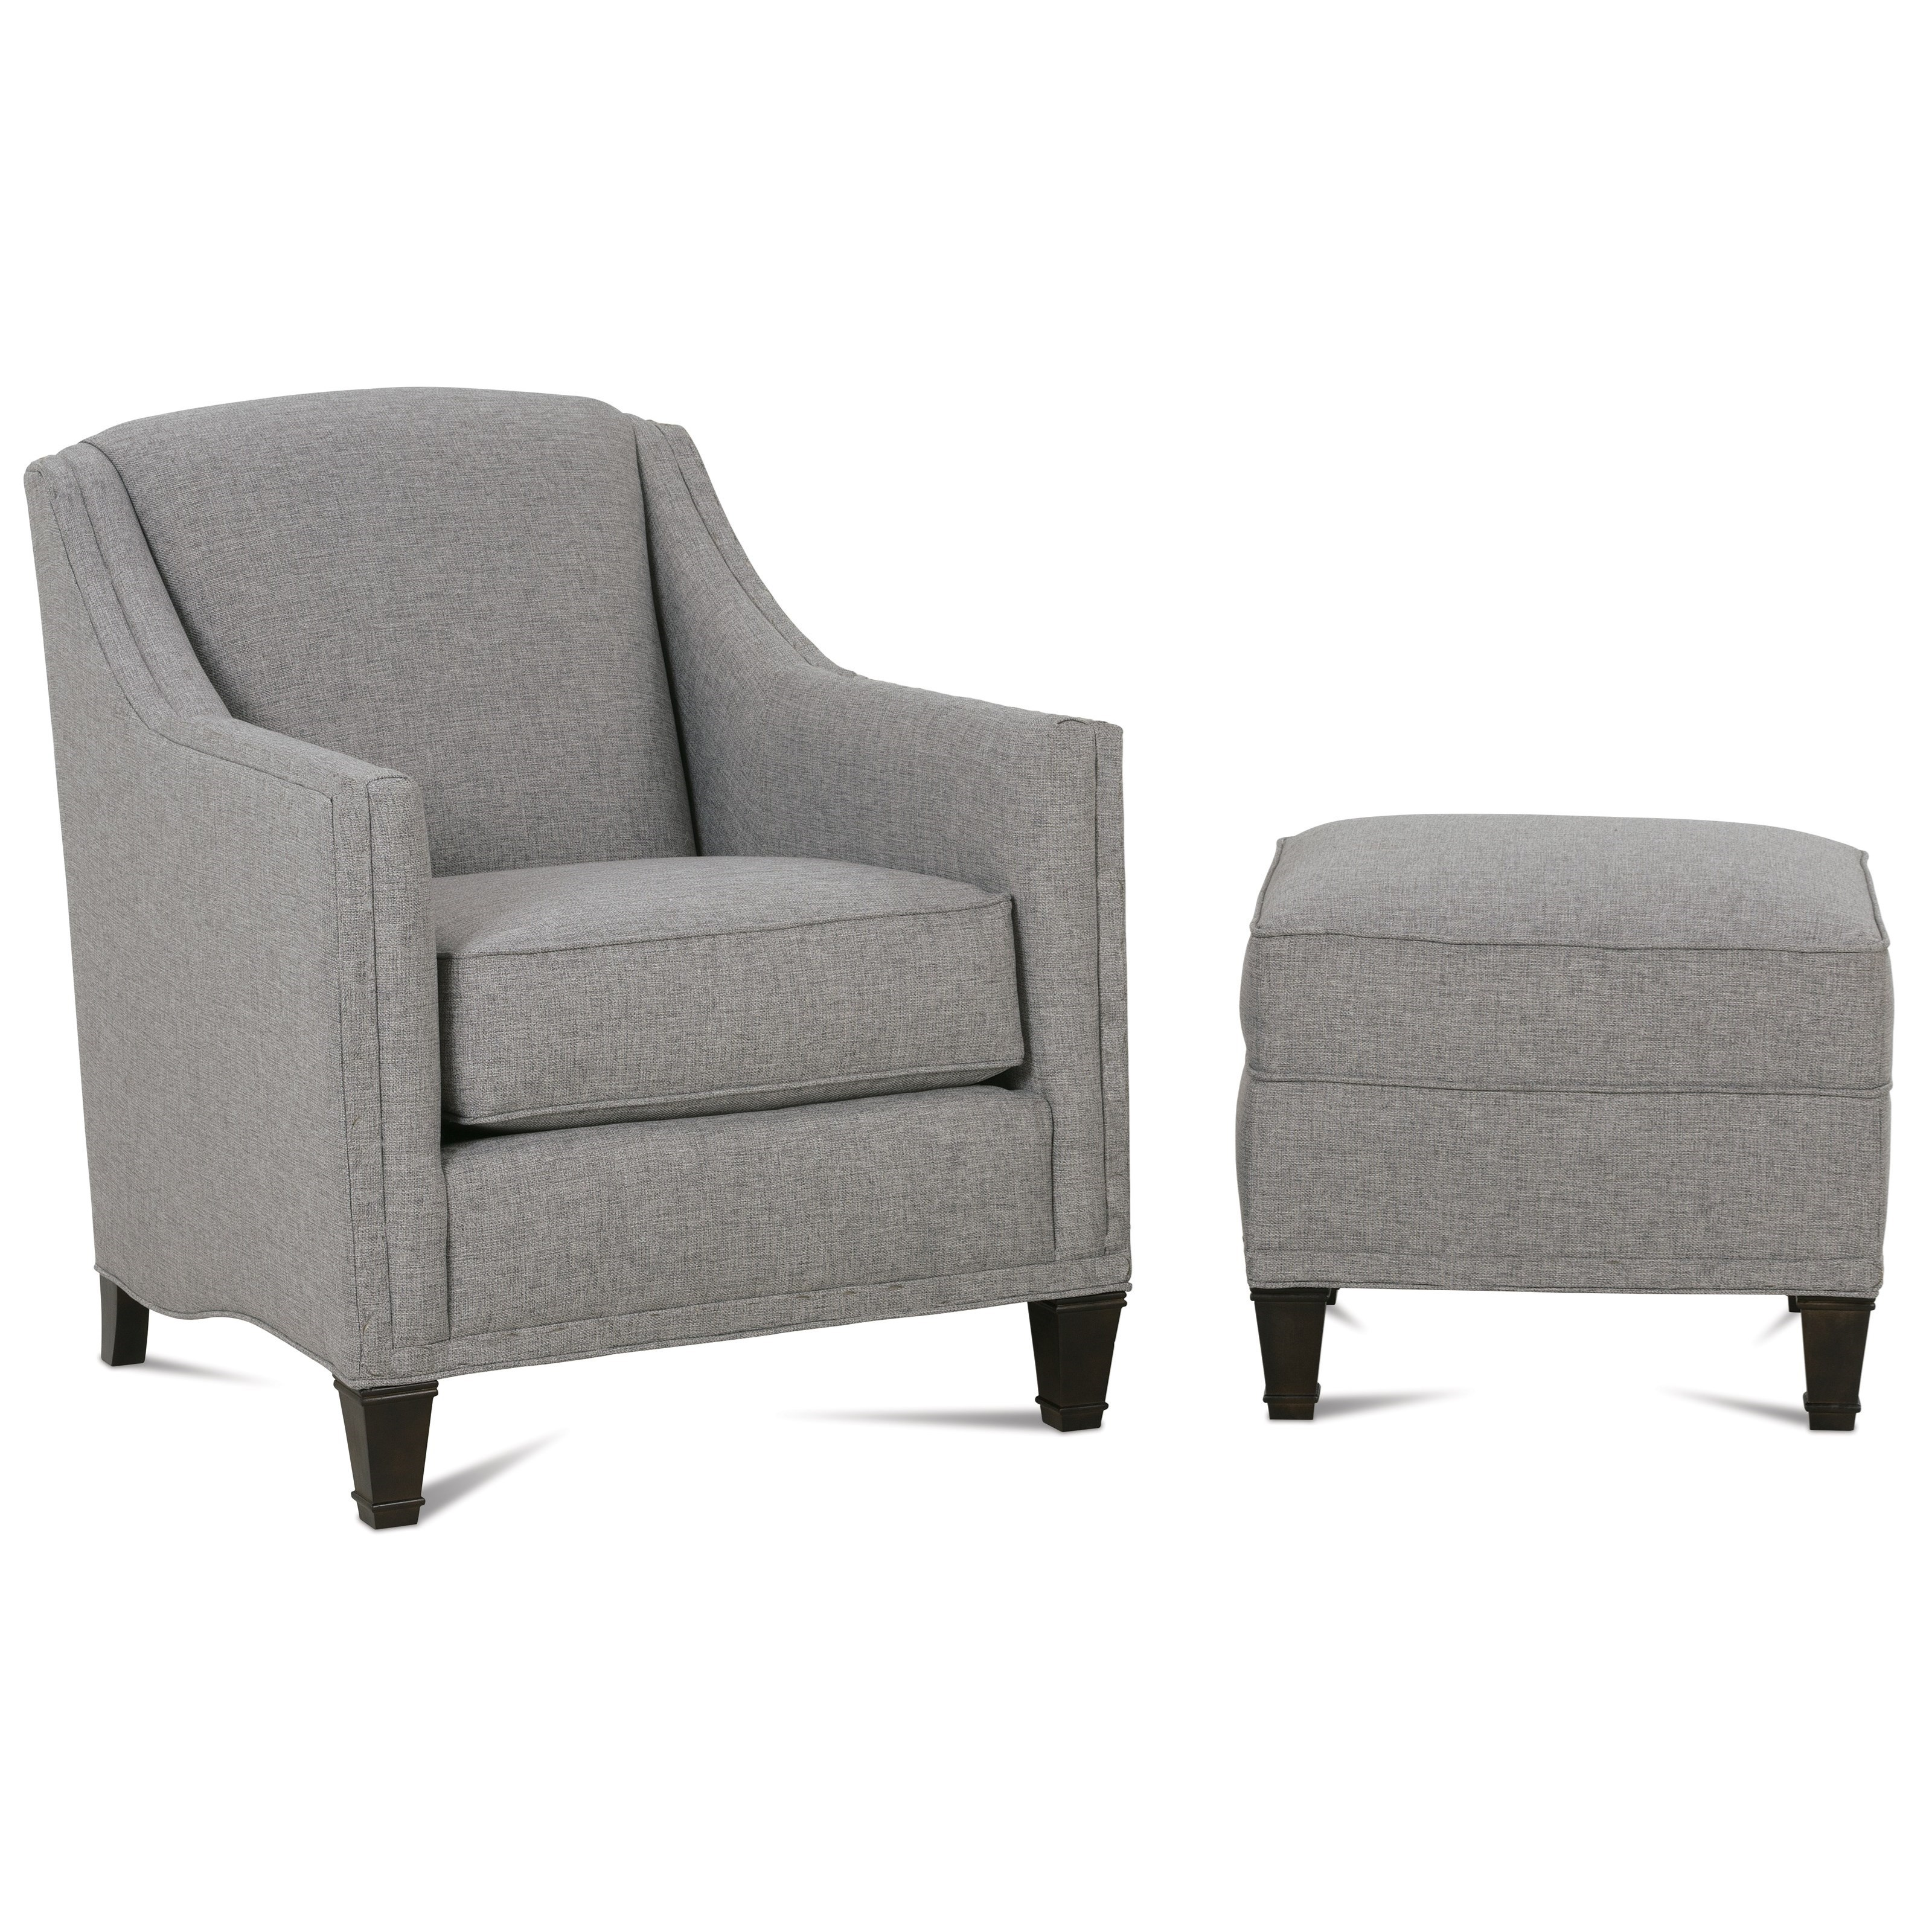 Gibson Chair & Ottoman by Rowe at Baer's Furniture